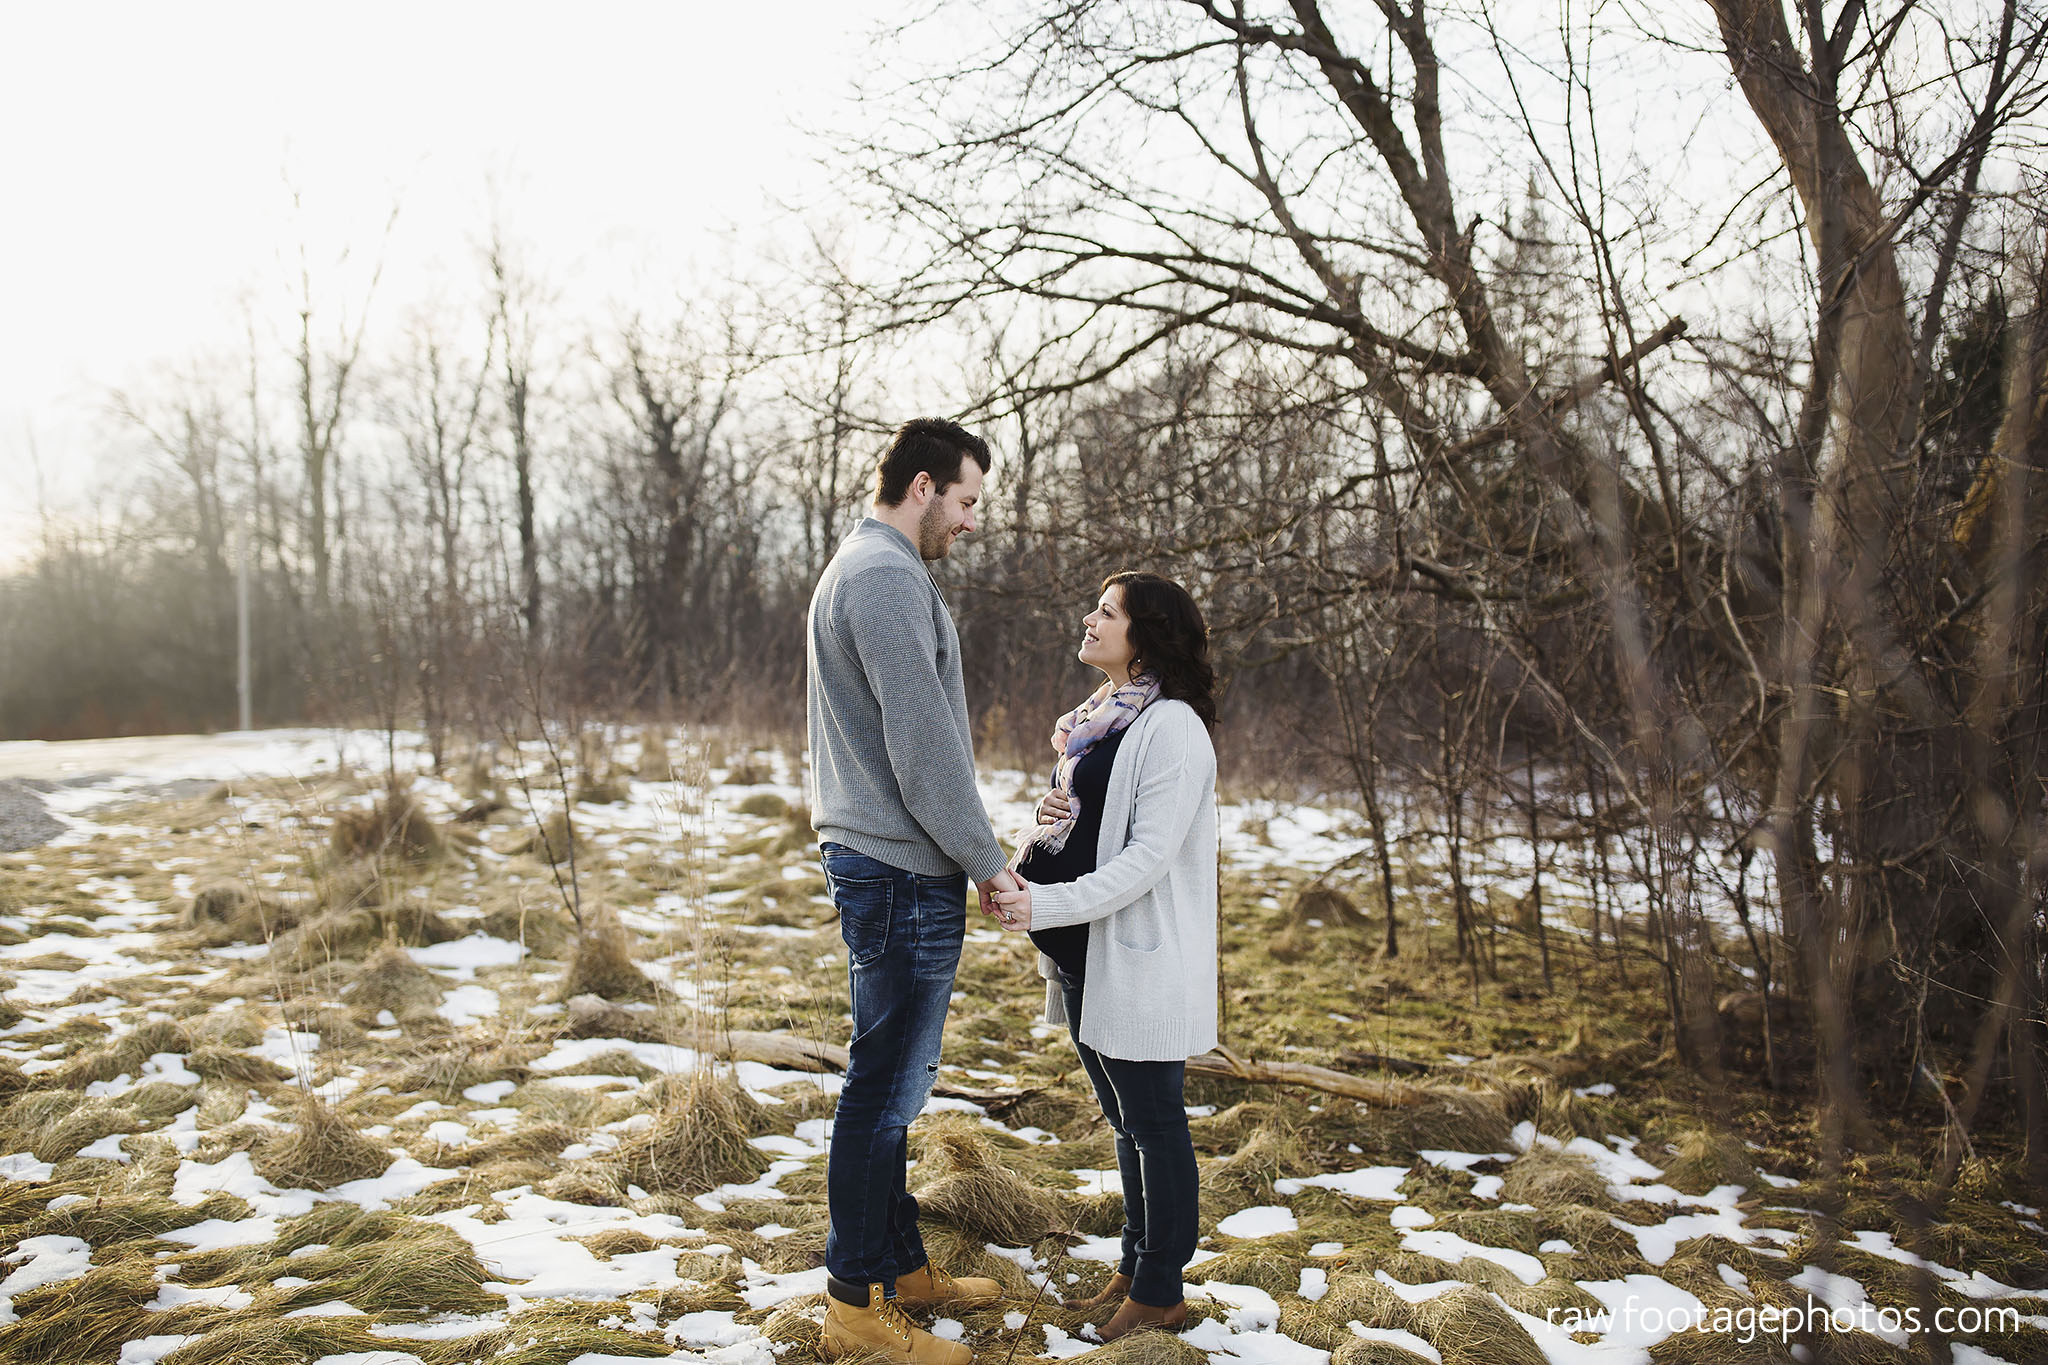 London_Ontario_Maternity_Photographer-Maternity_Session-Family_Photography-Winter_Photos-Raw_Footage_Photography021.jpg